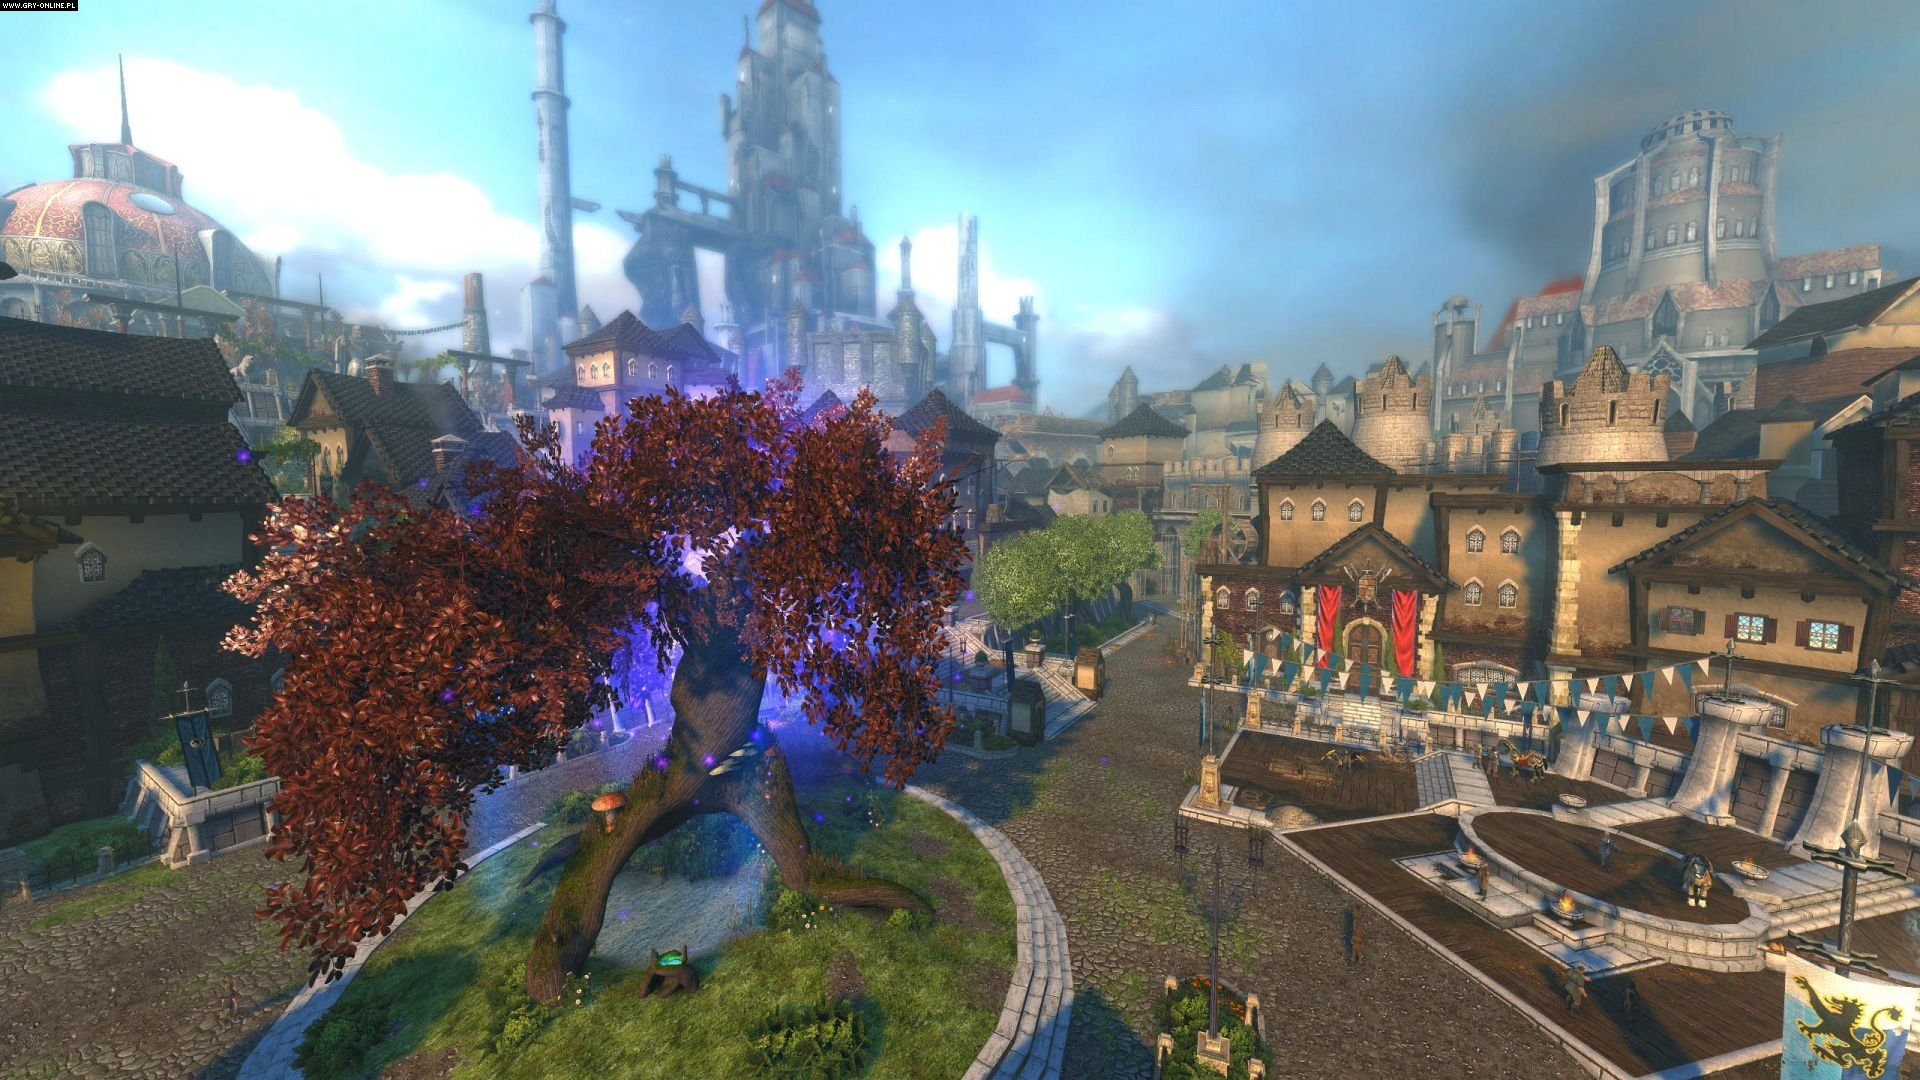 Neverwinter PC Games Image 26/334, Cryptic Studios, Perfect World Entertainment